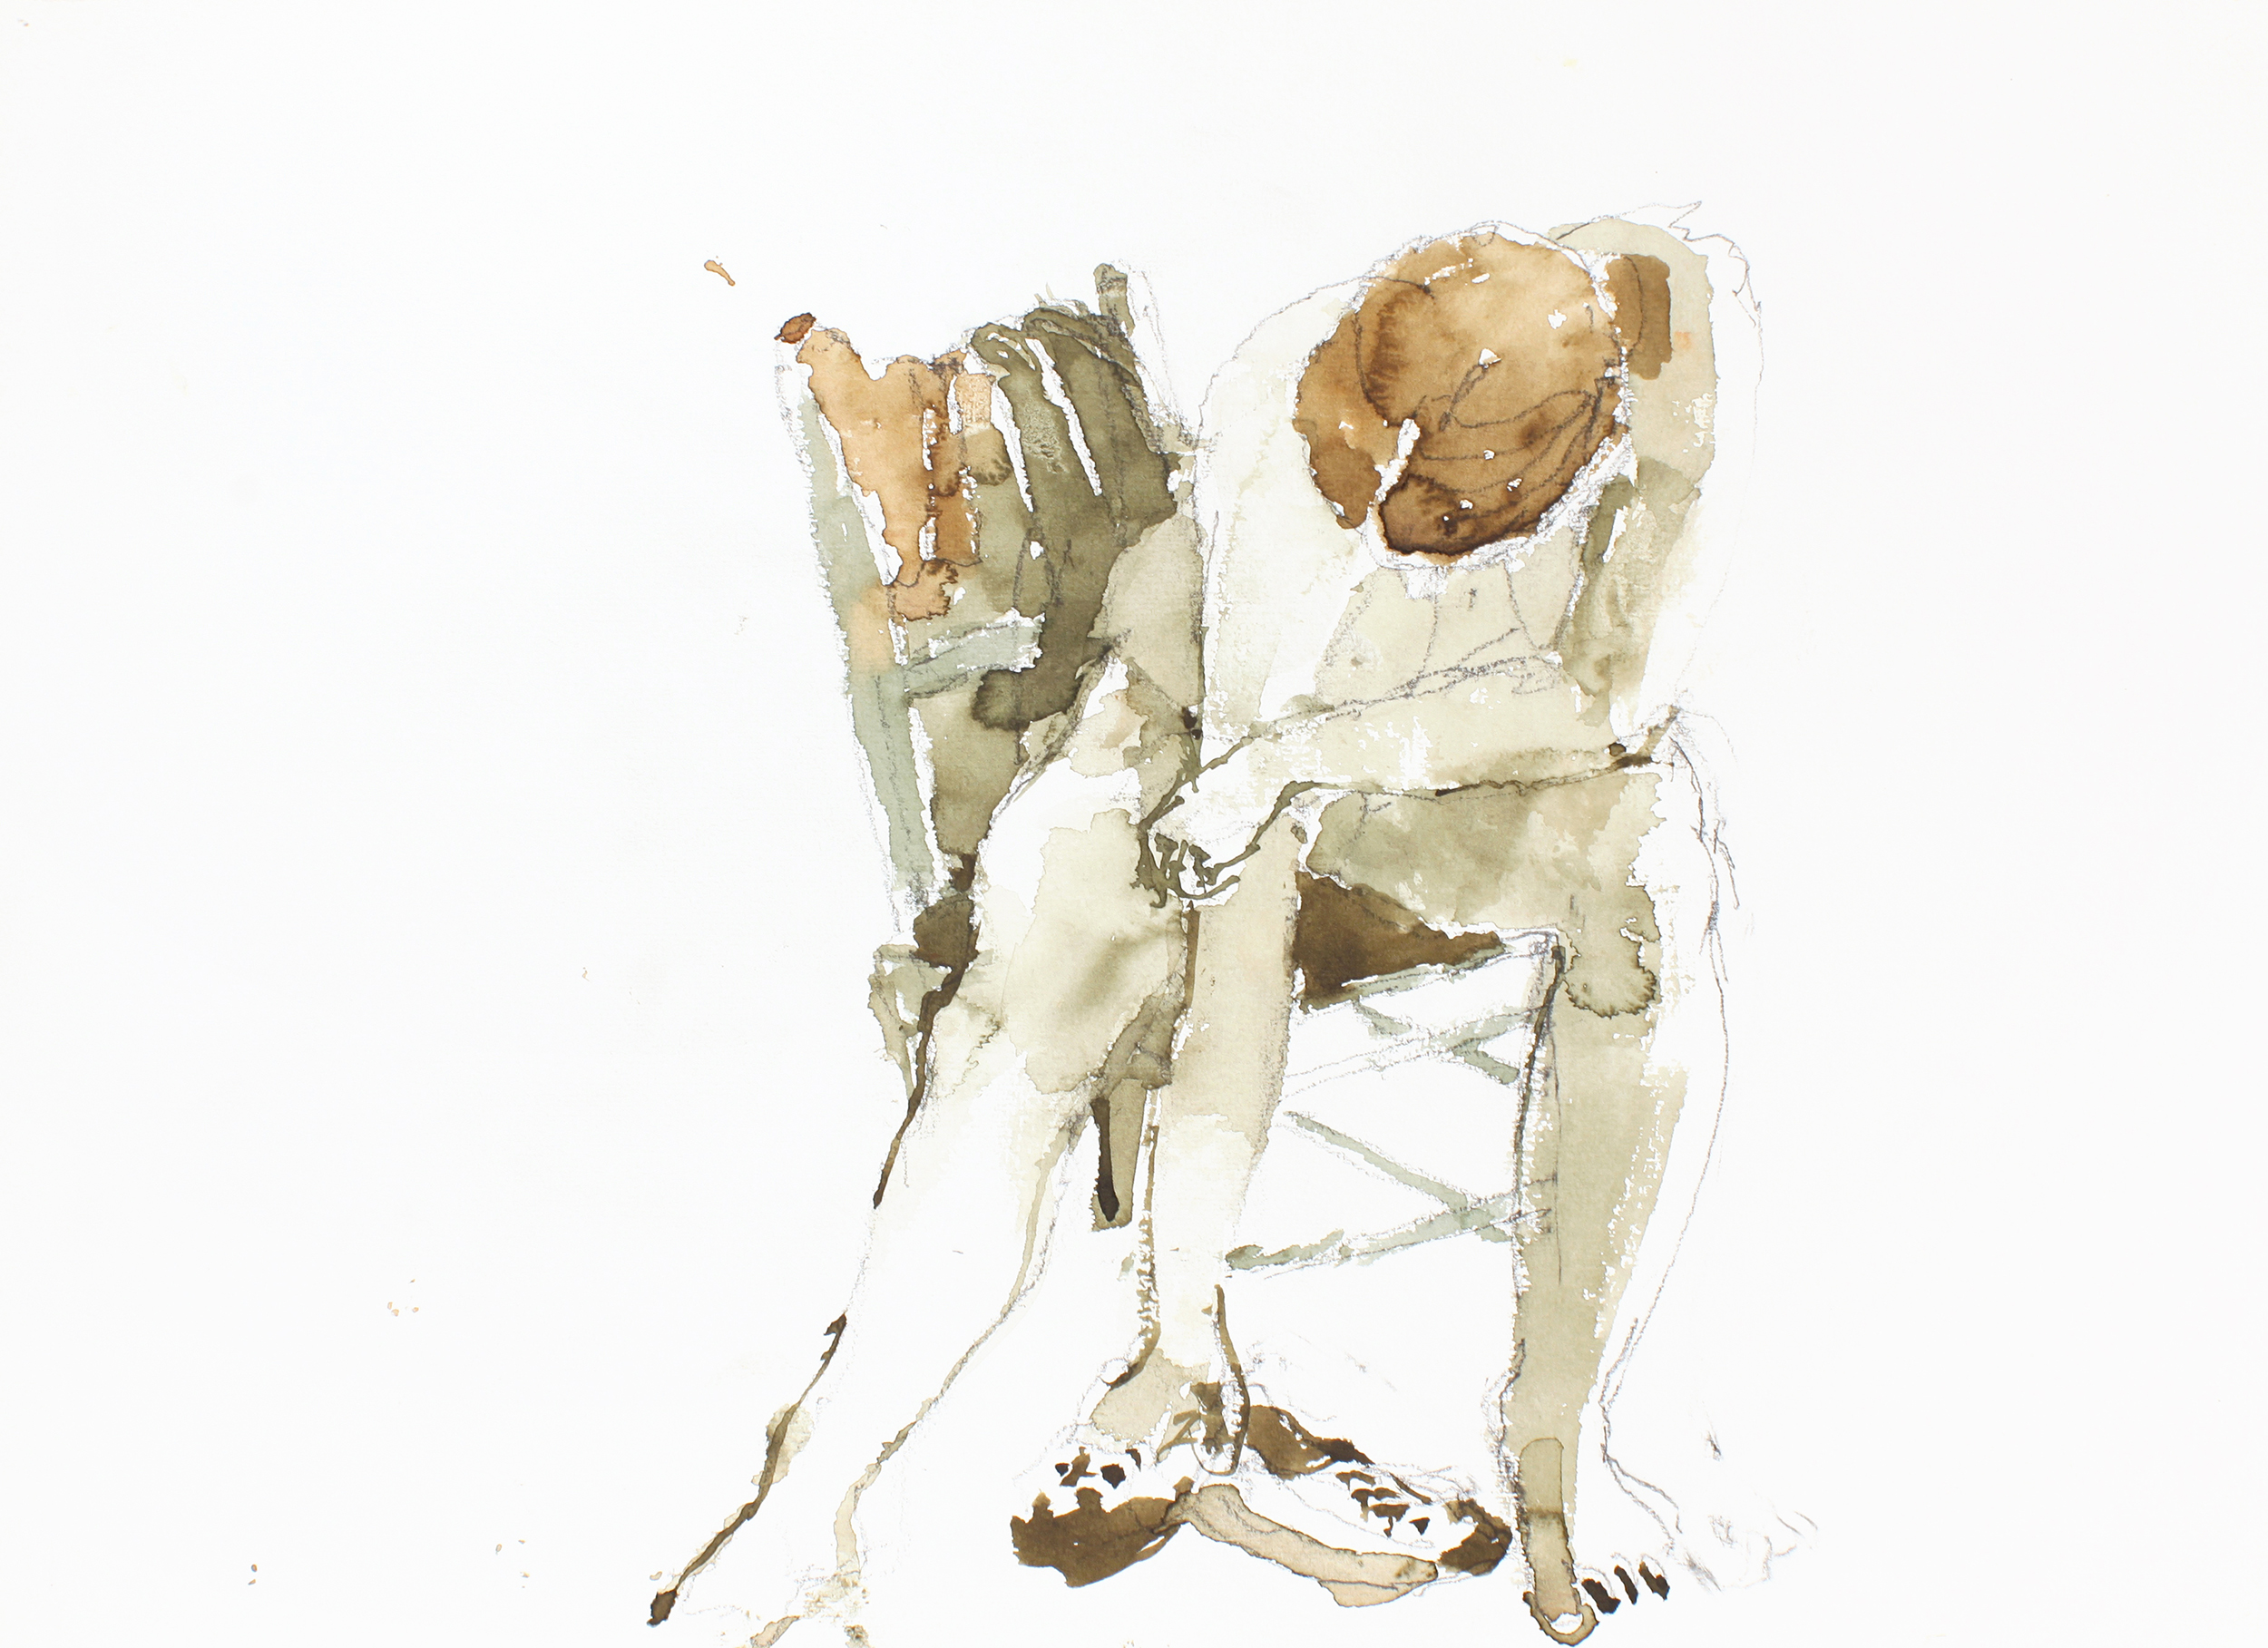 2005_Seated_Nude_Holding_Shoes_watercolour_and_pencil_on_paper_11x15in_WPF064.jpg